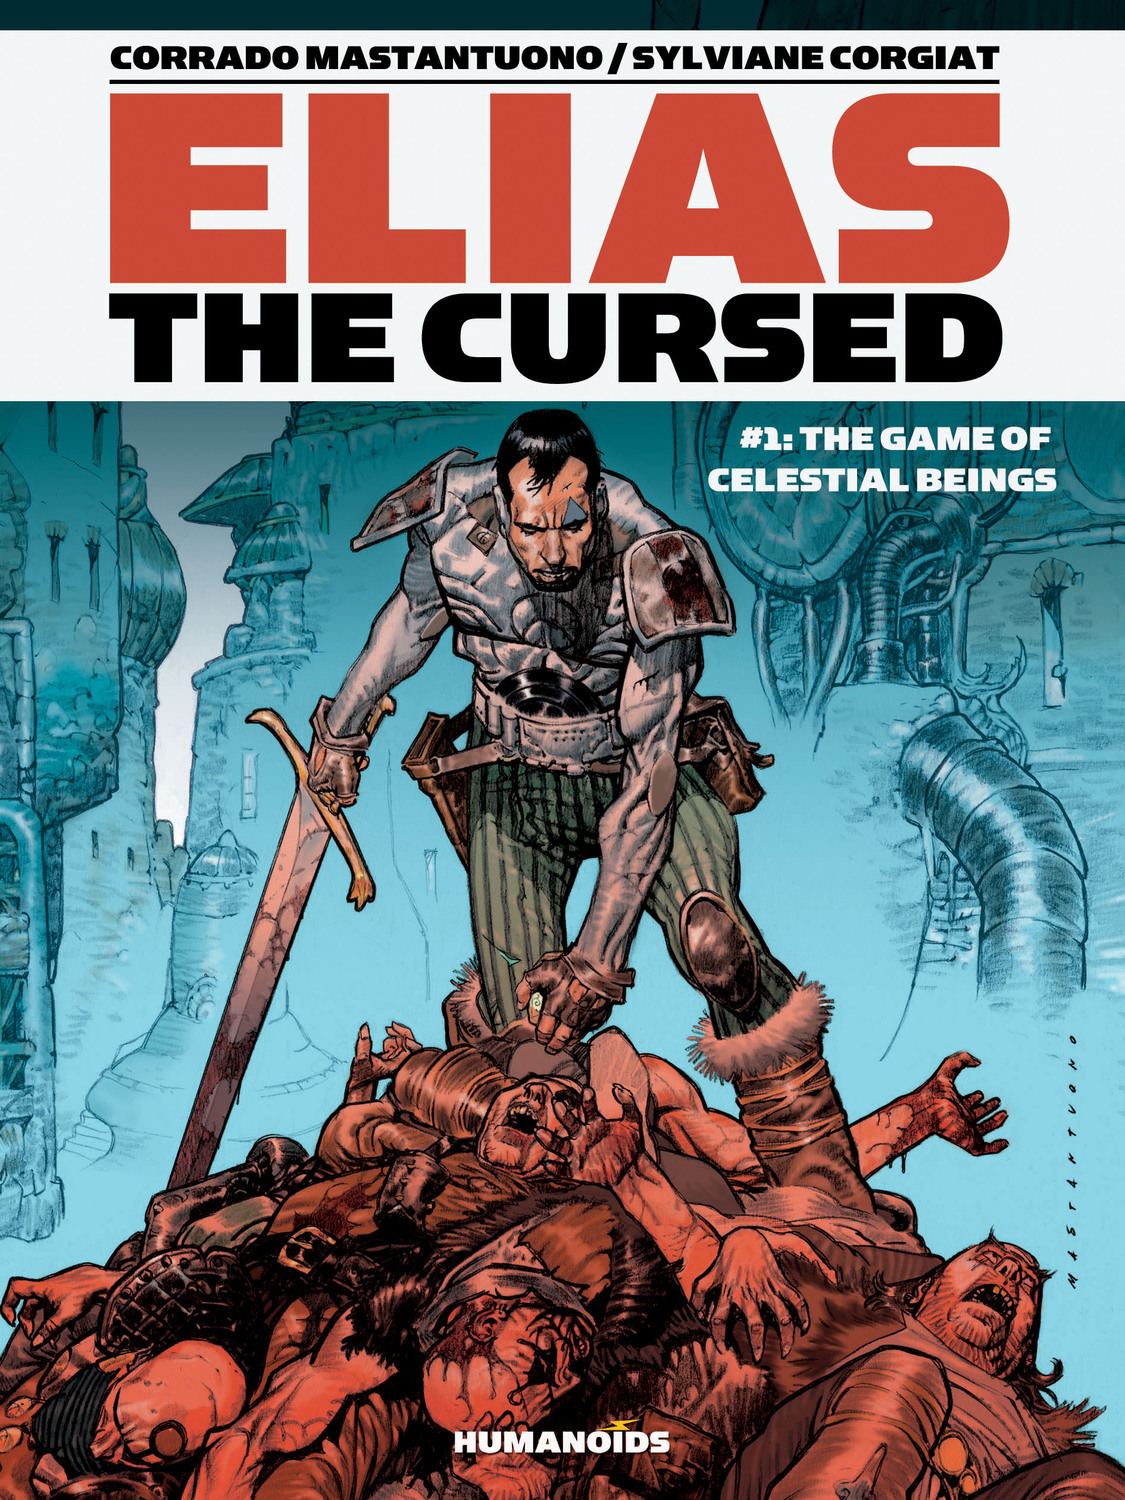 Elias The Cursed #1 : The Game of Celestial Beings - Digital Comic